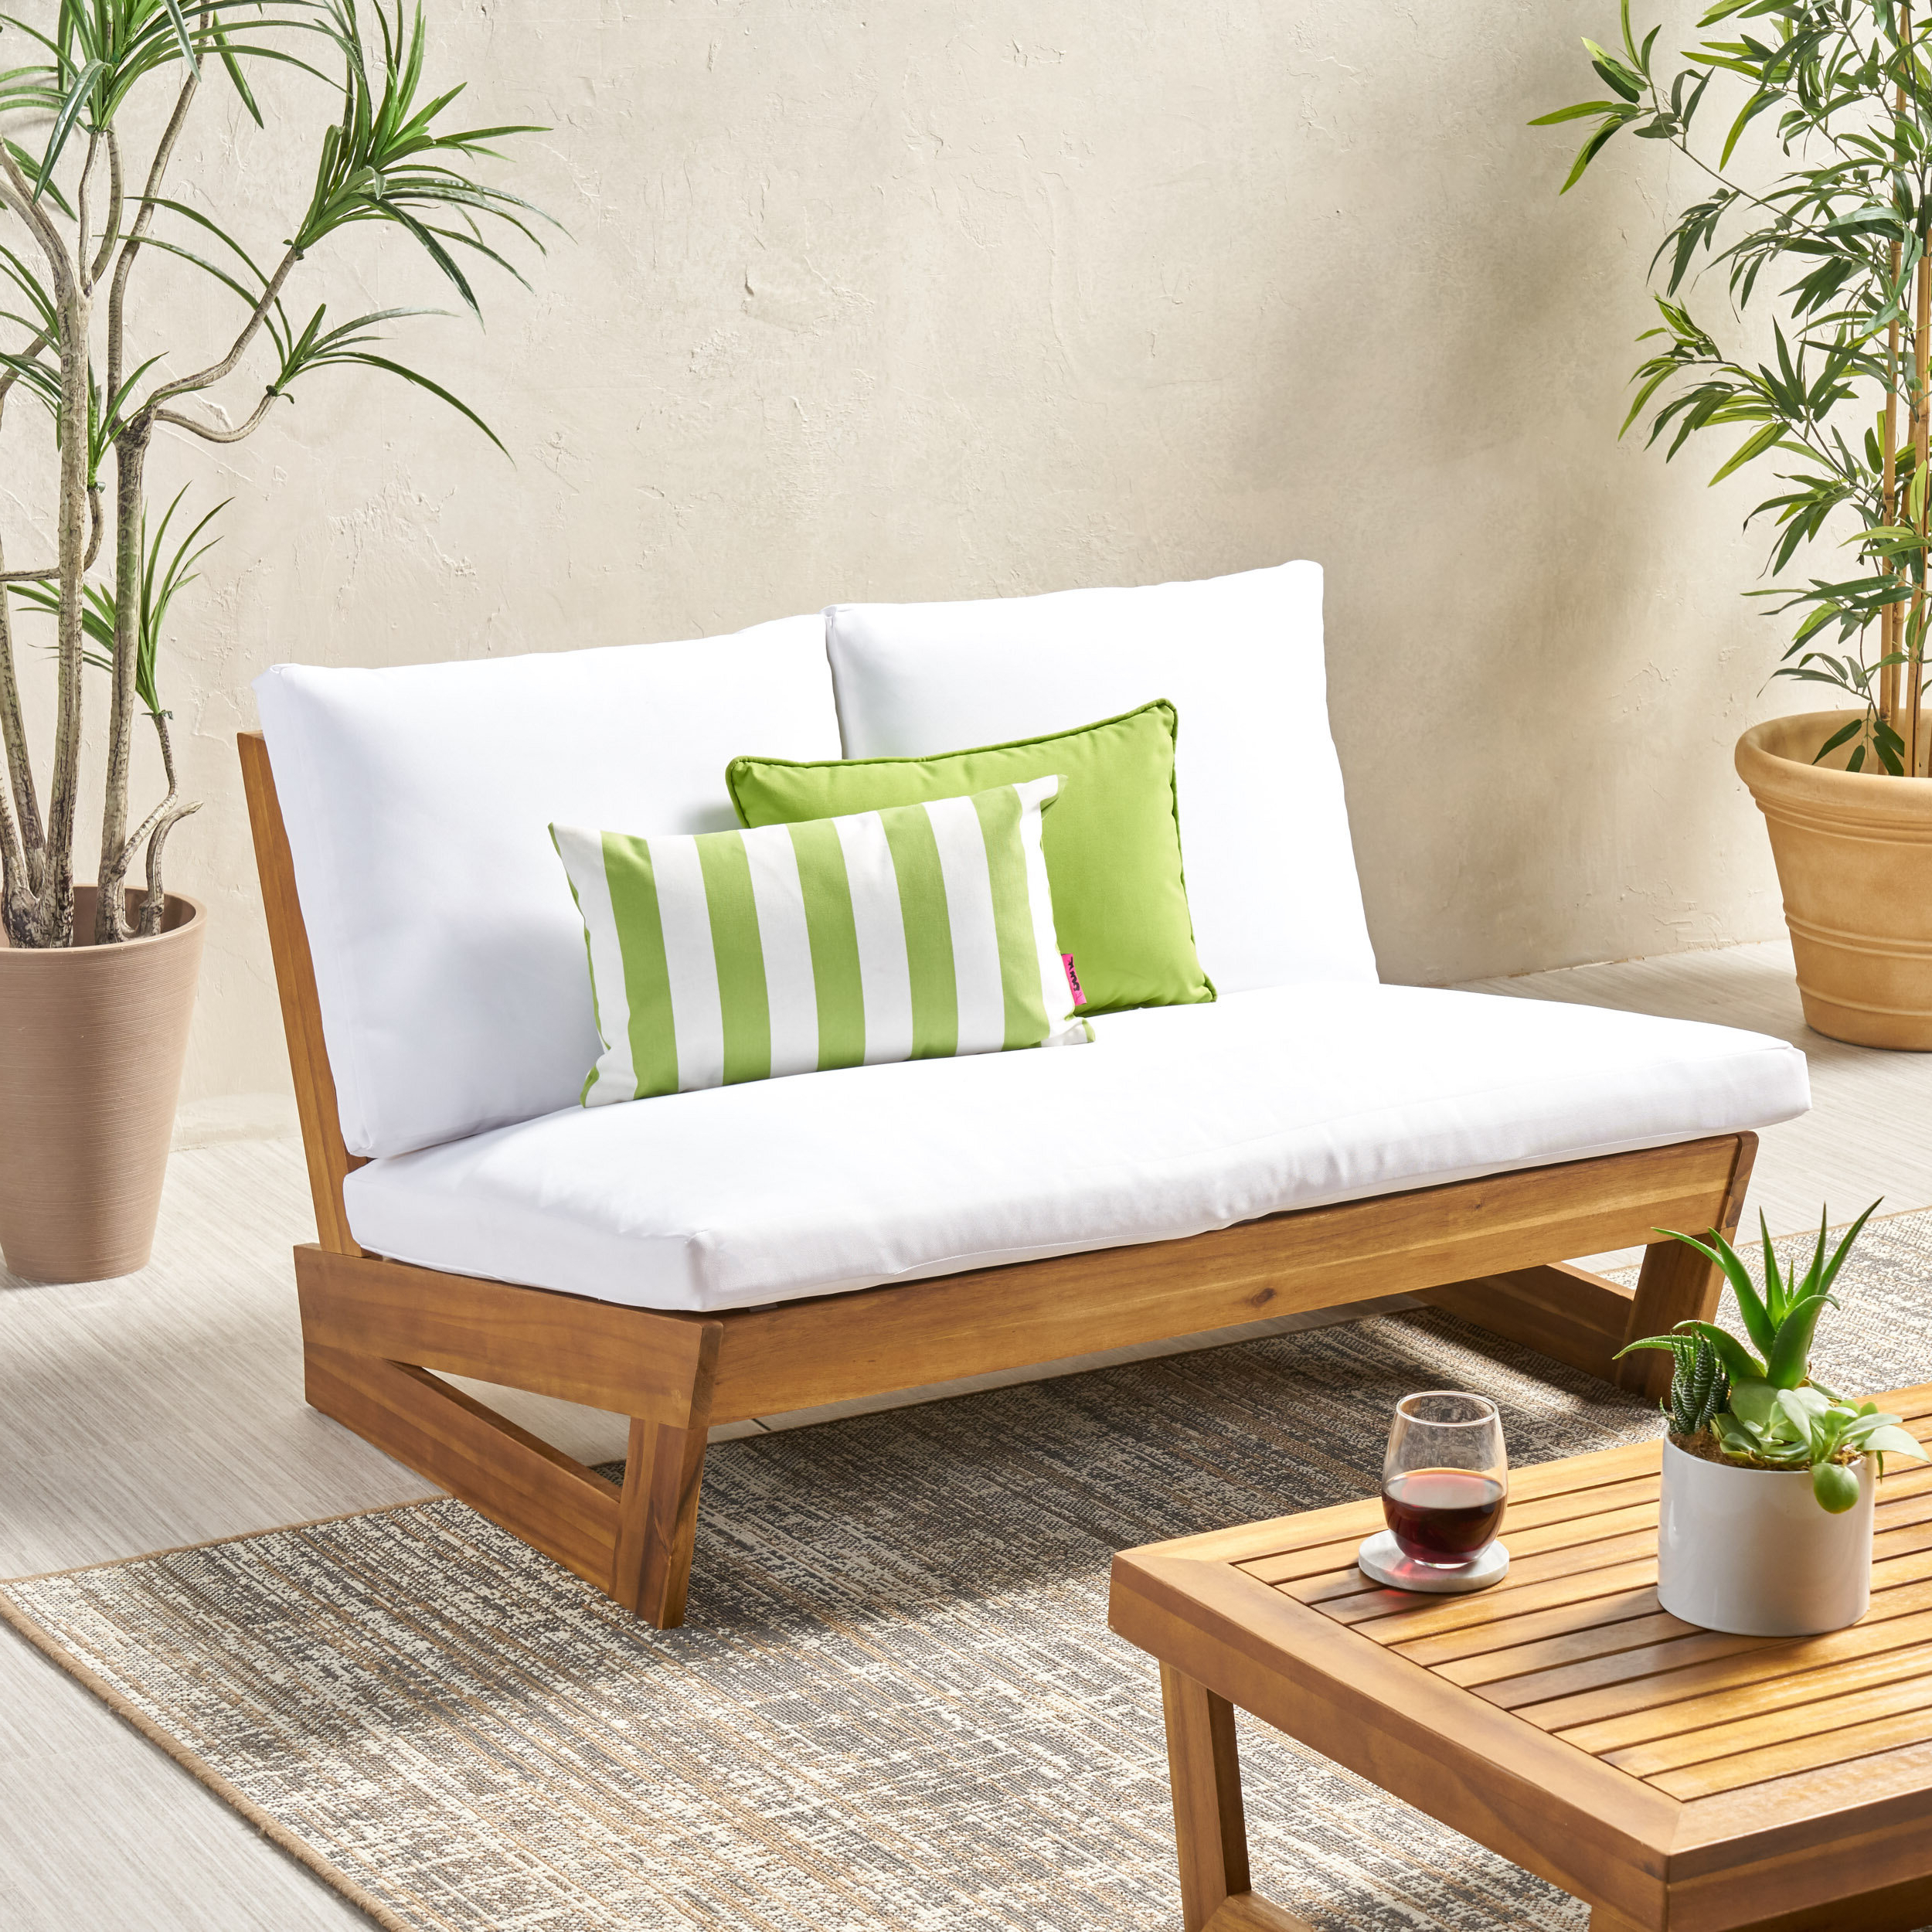 2020 Pekalongan Outdoor Loveseat With Cushions With Regard To Bullock Outdoor Wooden Loveseats With Cushions (View 4 of 20)